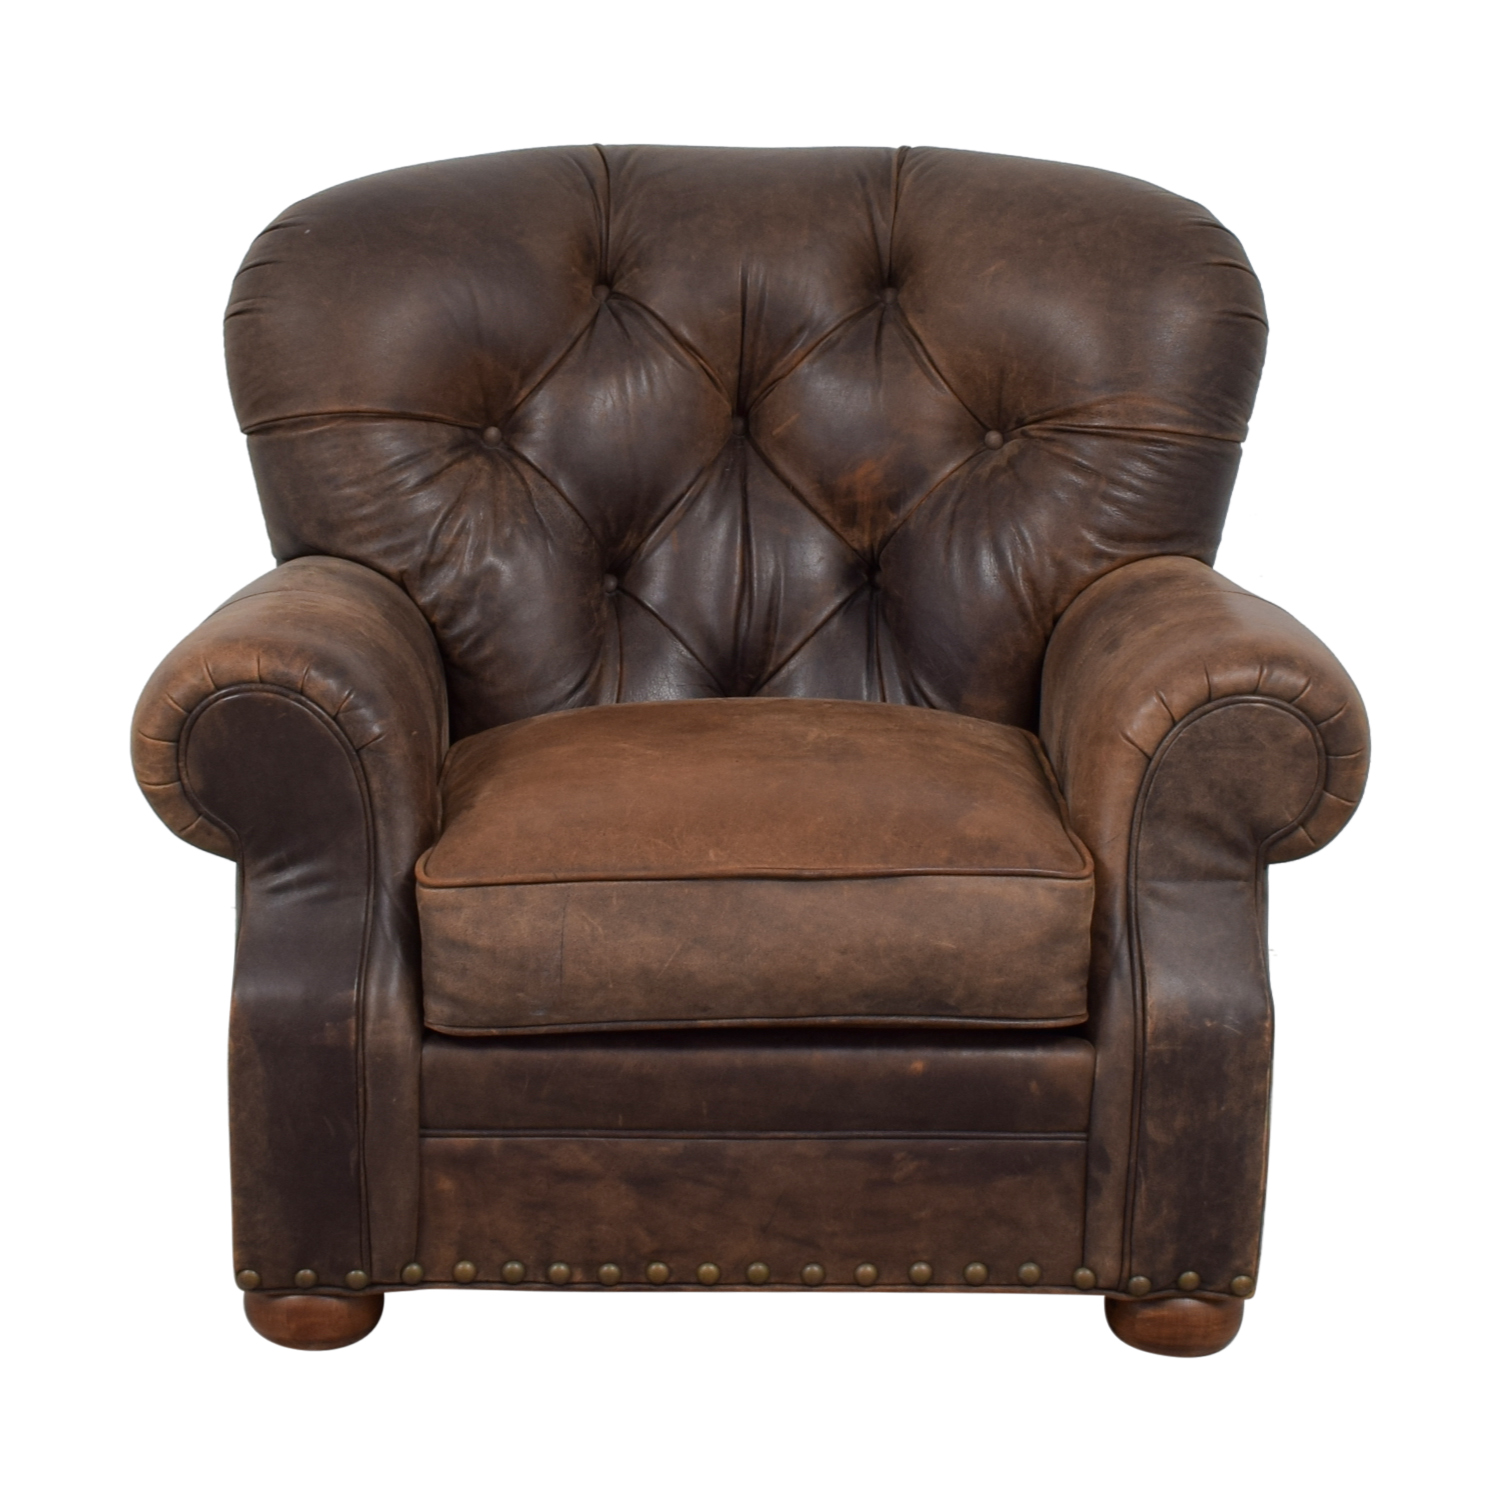 Restoration Hardware Churchill  Brown Leather Tufted Nailhead Chair / Chairs